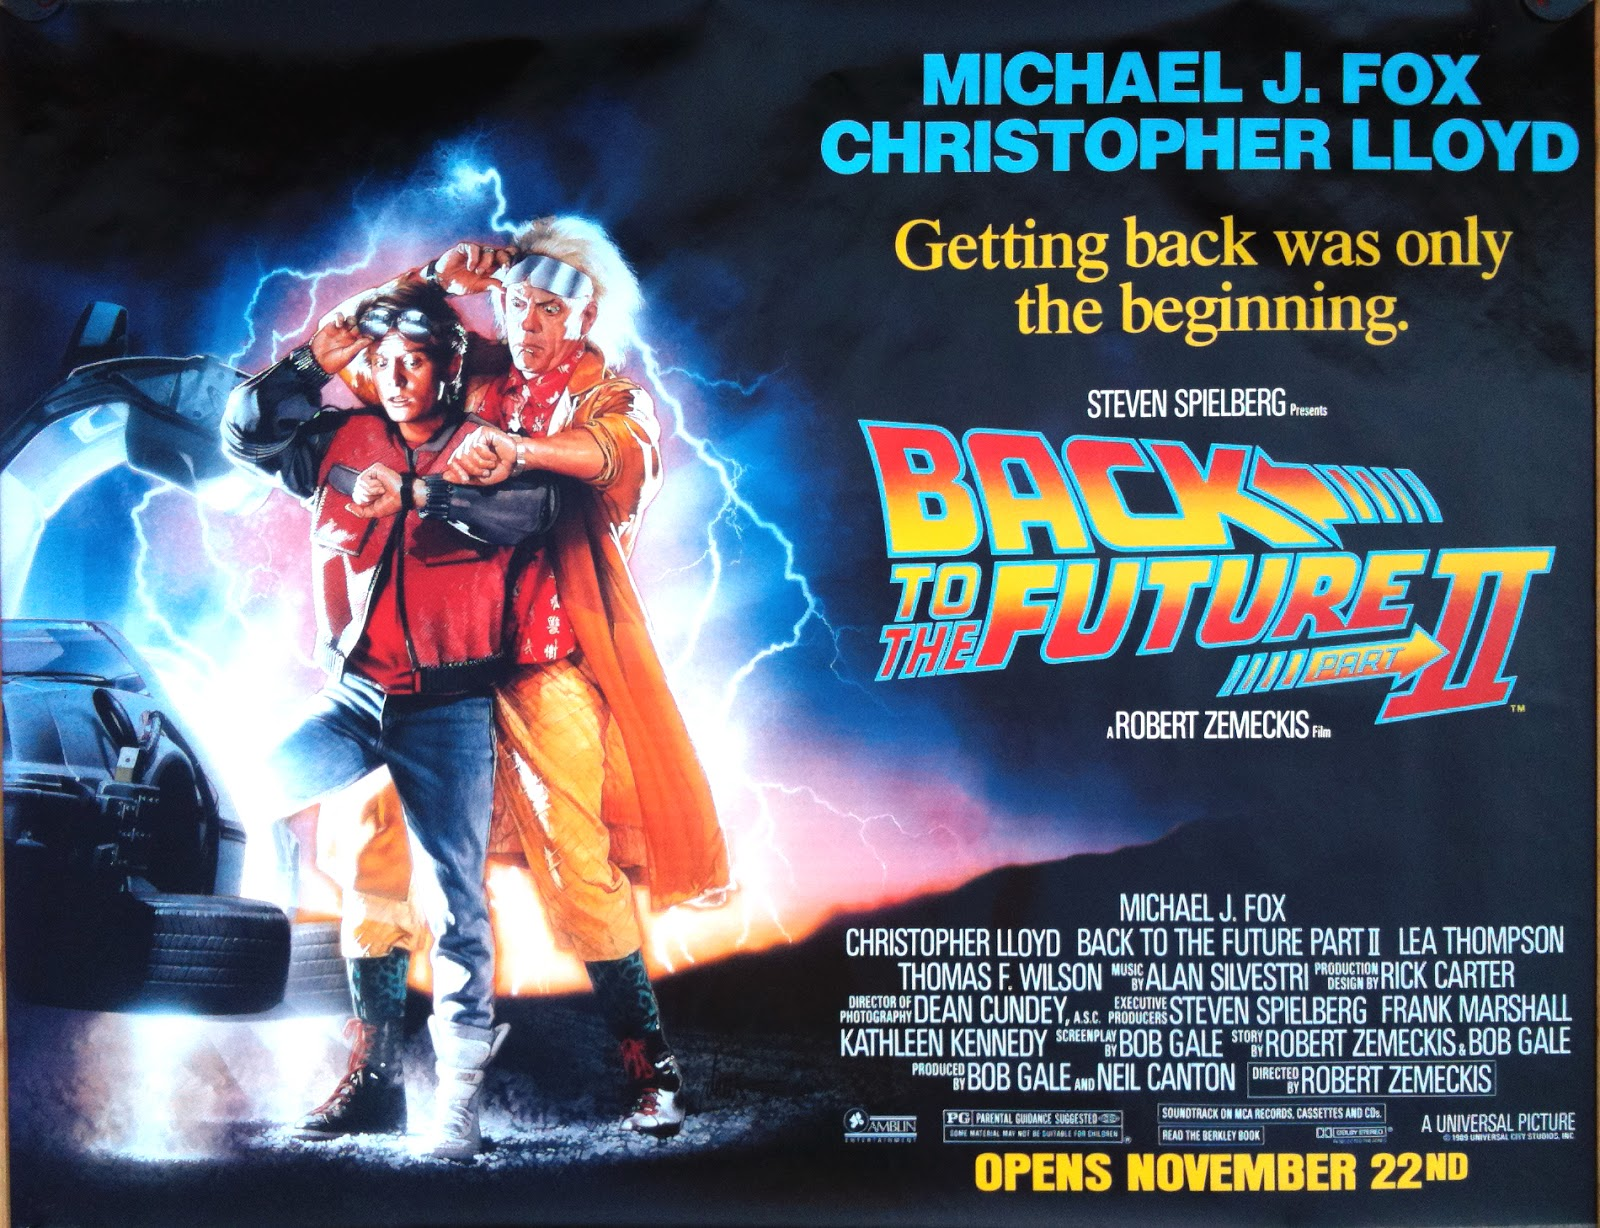 backtothefuture212.jpg